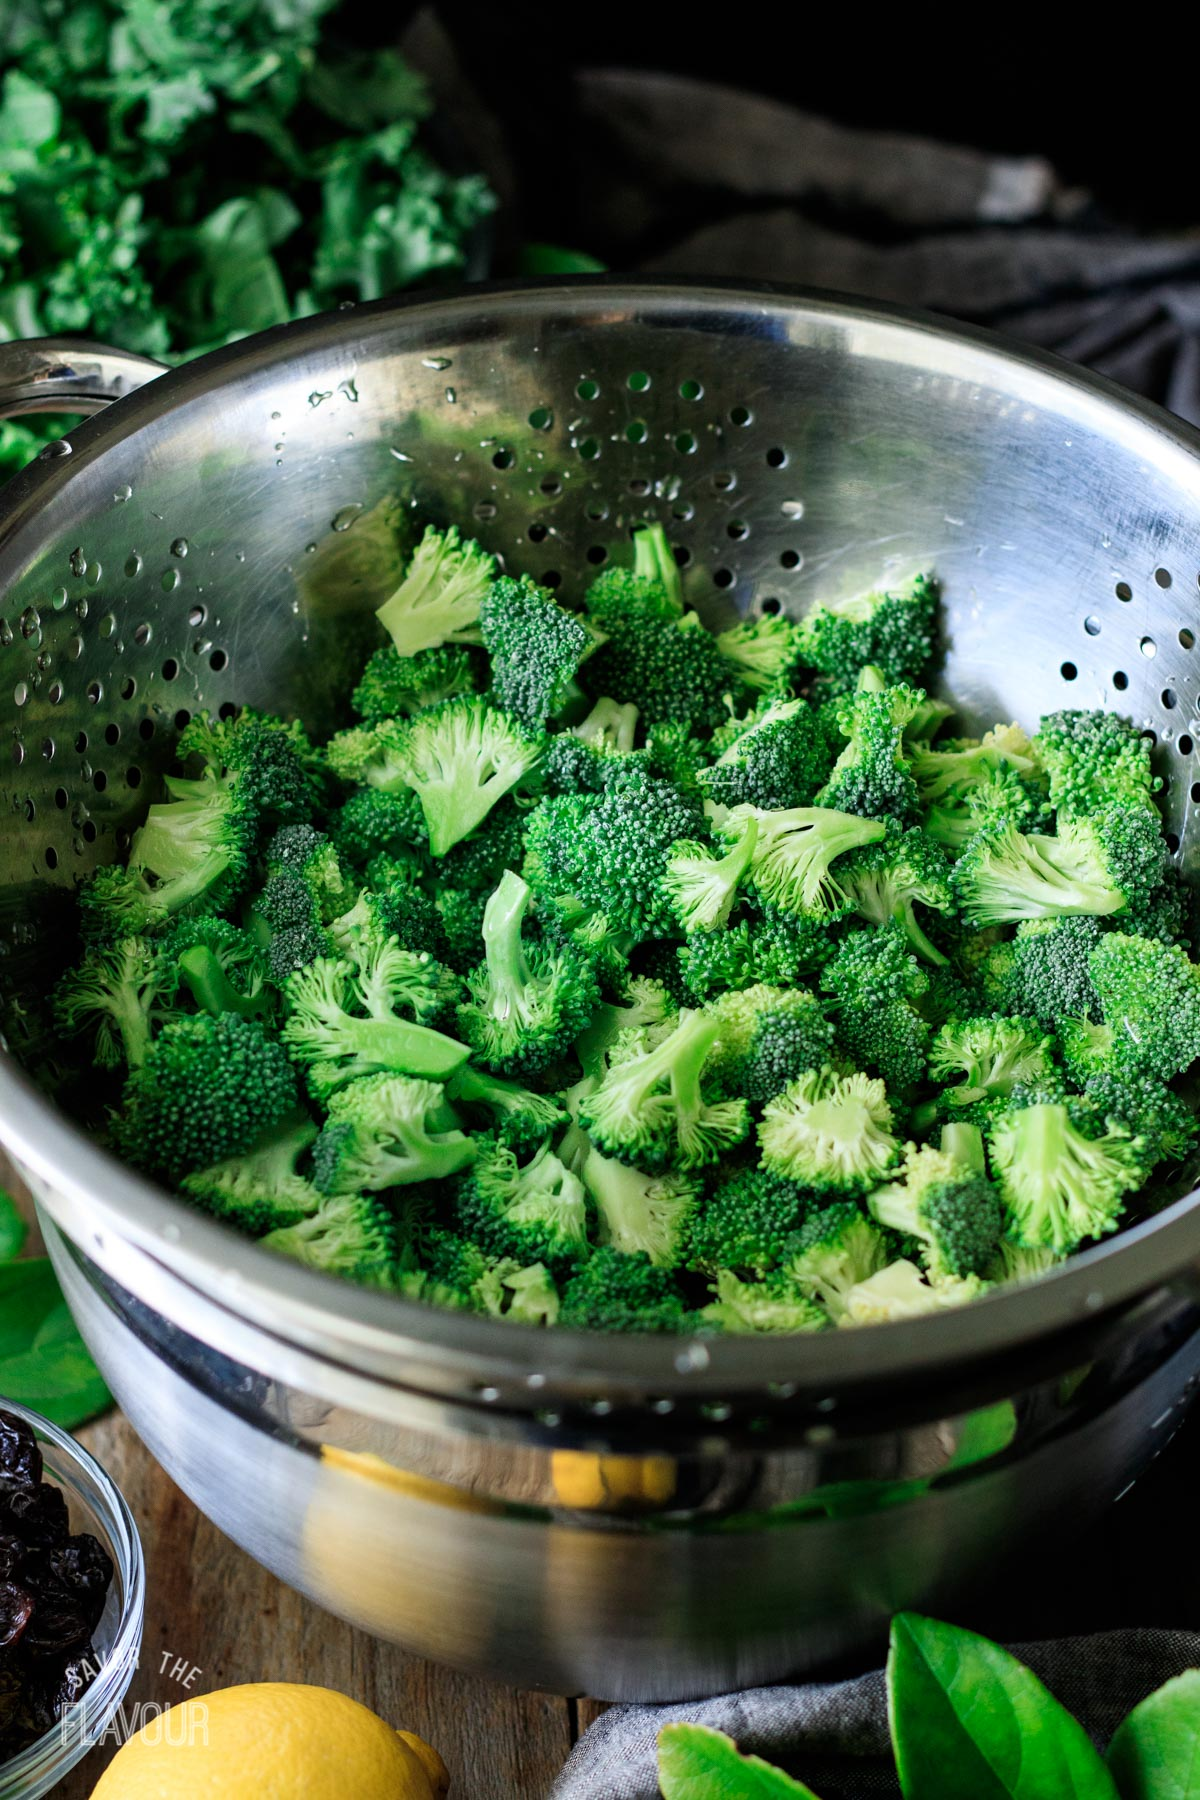 rinsed broccoli florets in a stainless steel colander